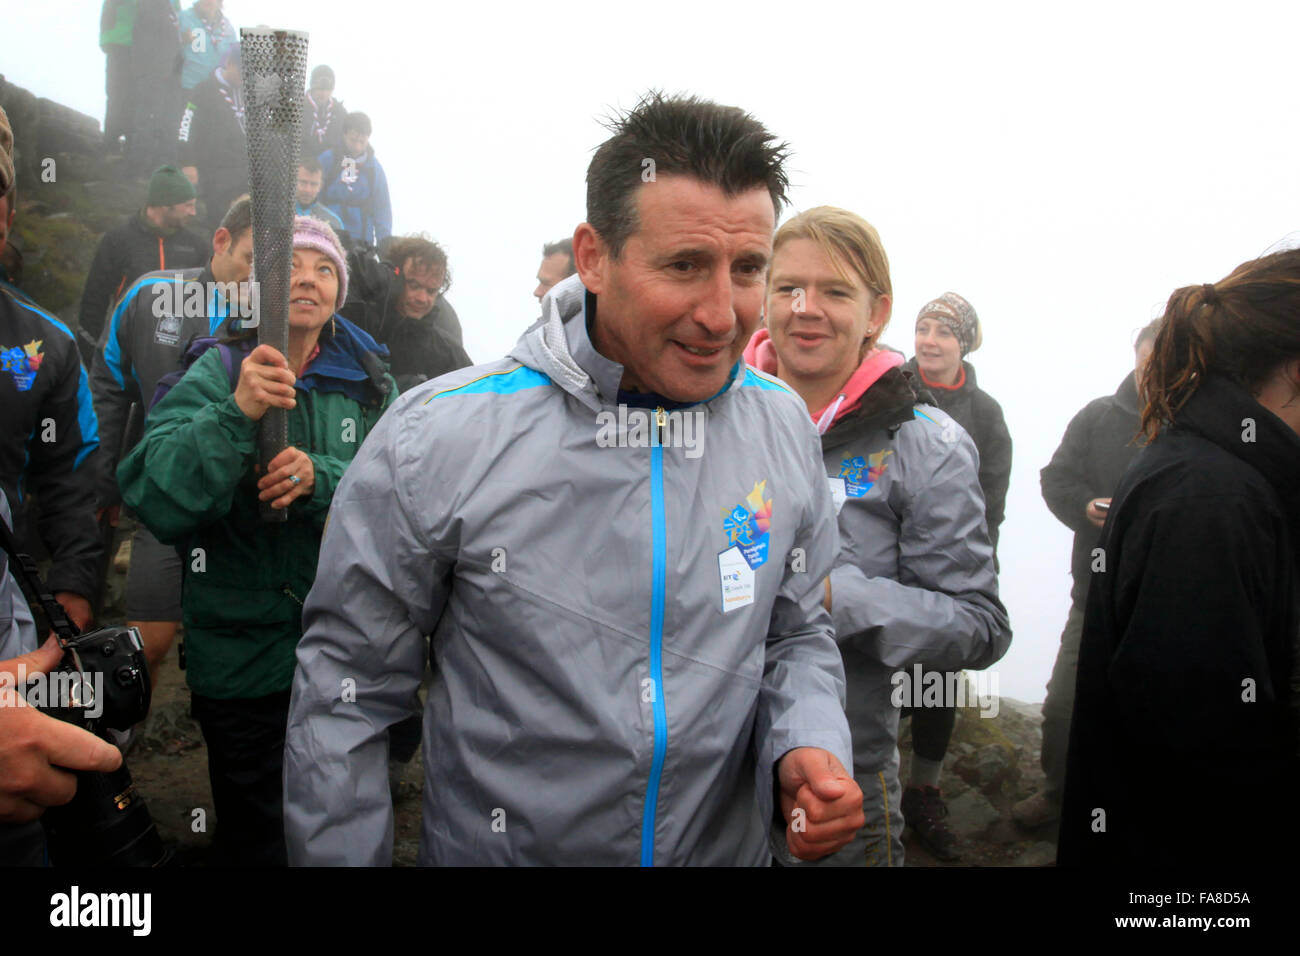 Sebastian Coe joins Scouts from the Snowdonia area  in lighting the Paralympic flame at the summit of Snowdon - Stock Image